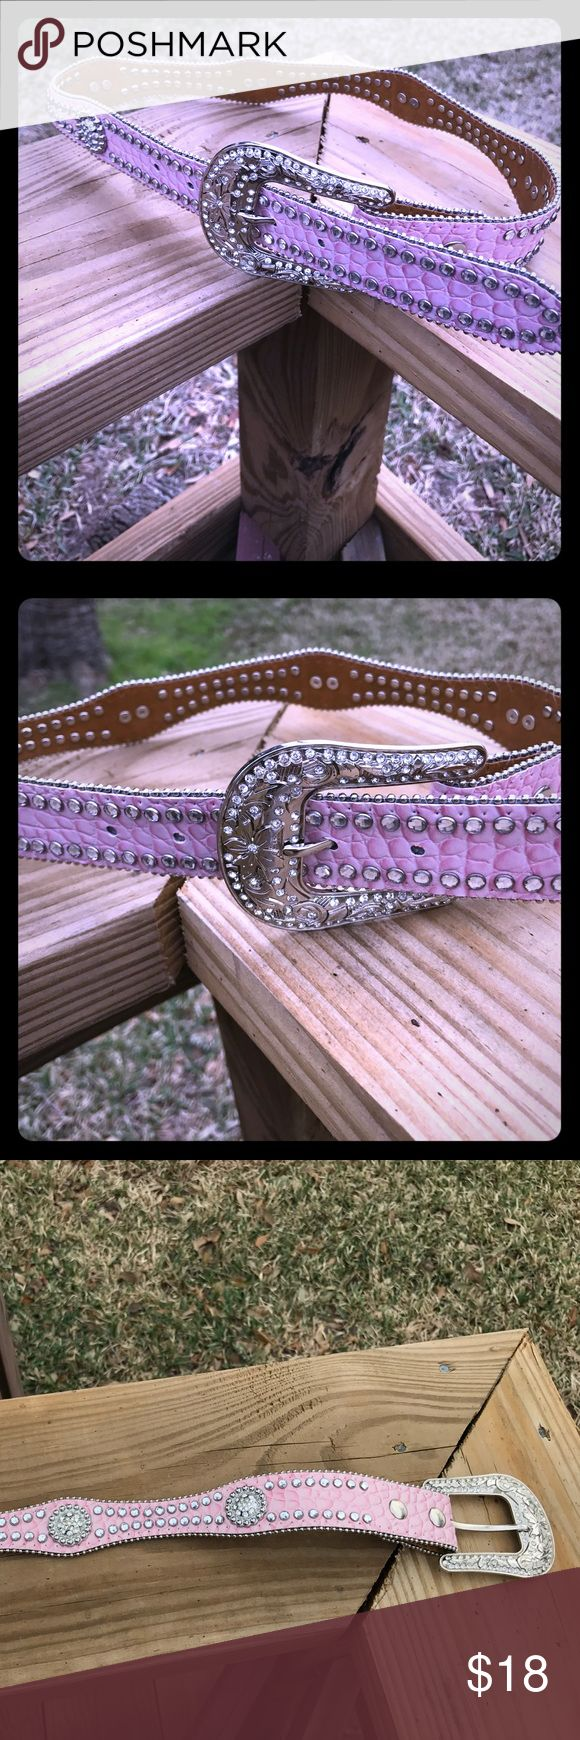 "Pink western bling belt sz small 24/26 Pink western bling belt. Size small. Has 26 inside it, but might fit 24-26. Overall length is ."" In good condition, but missing the loop on it, but it could be tucked into a jean loop. Accessories Belts"